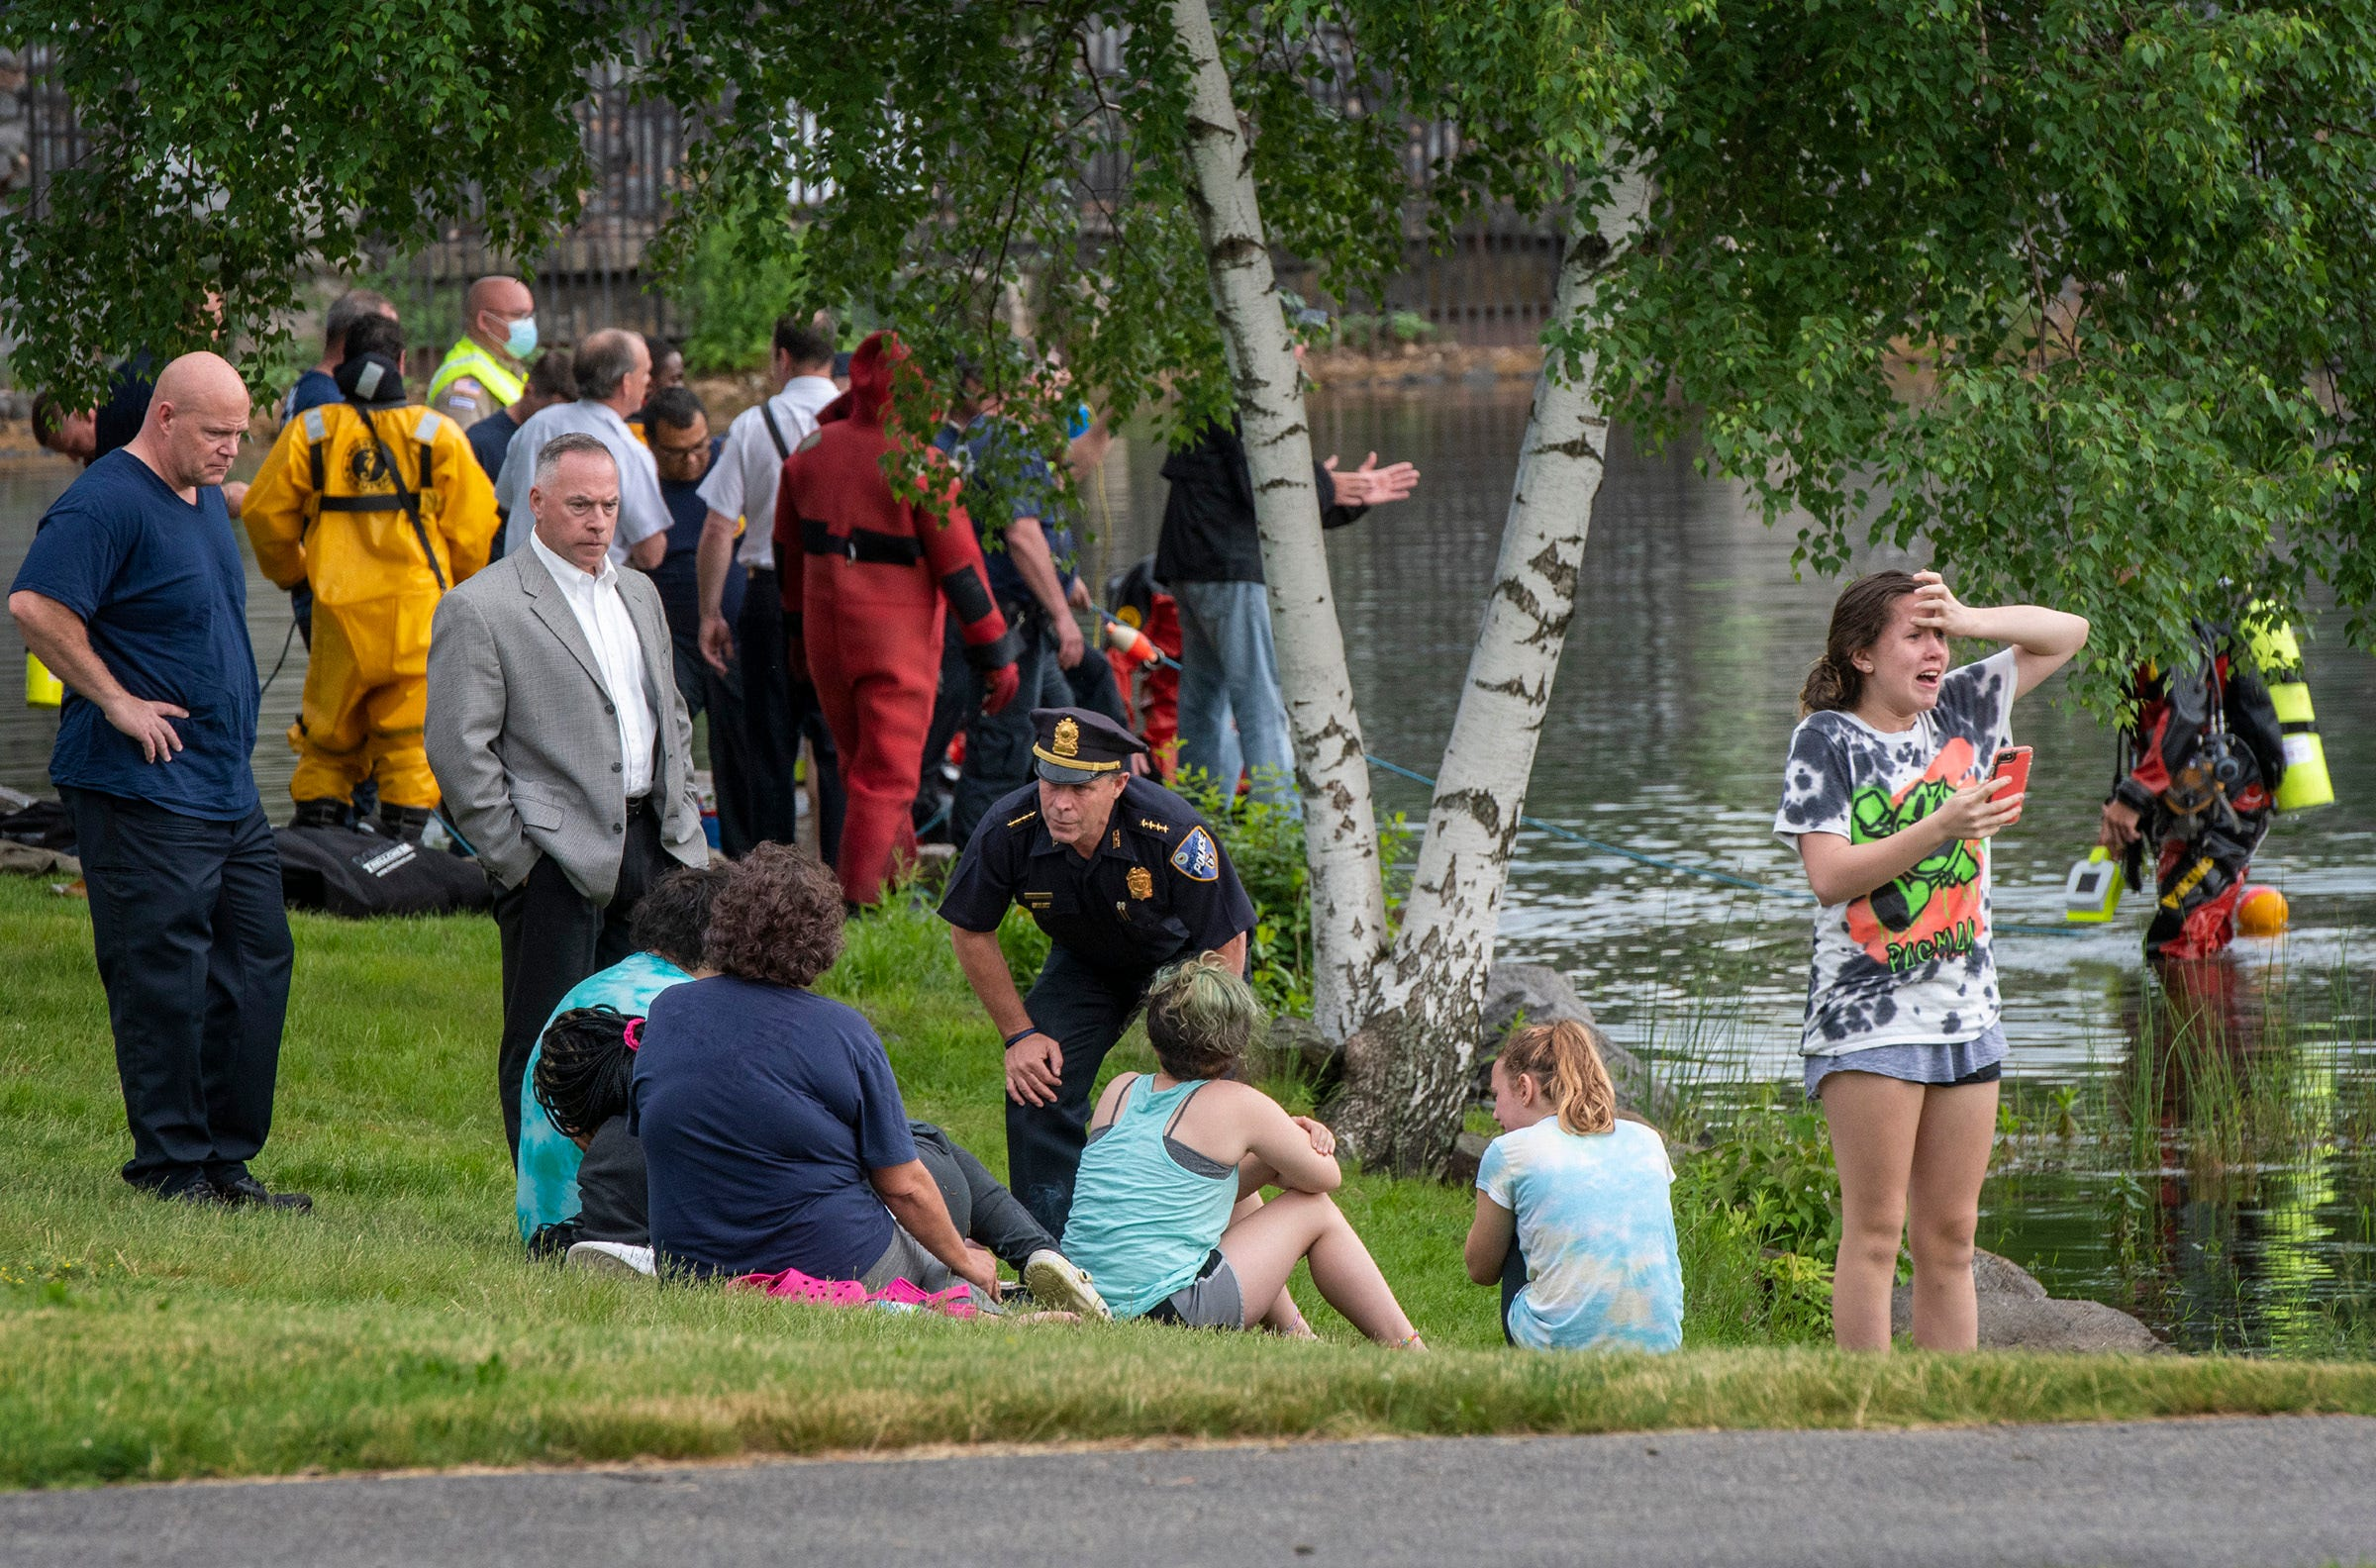 Mass. officer drowns trying to save teen who also died 2